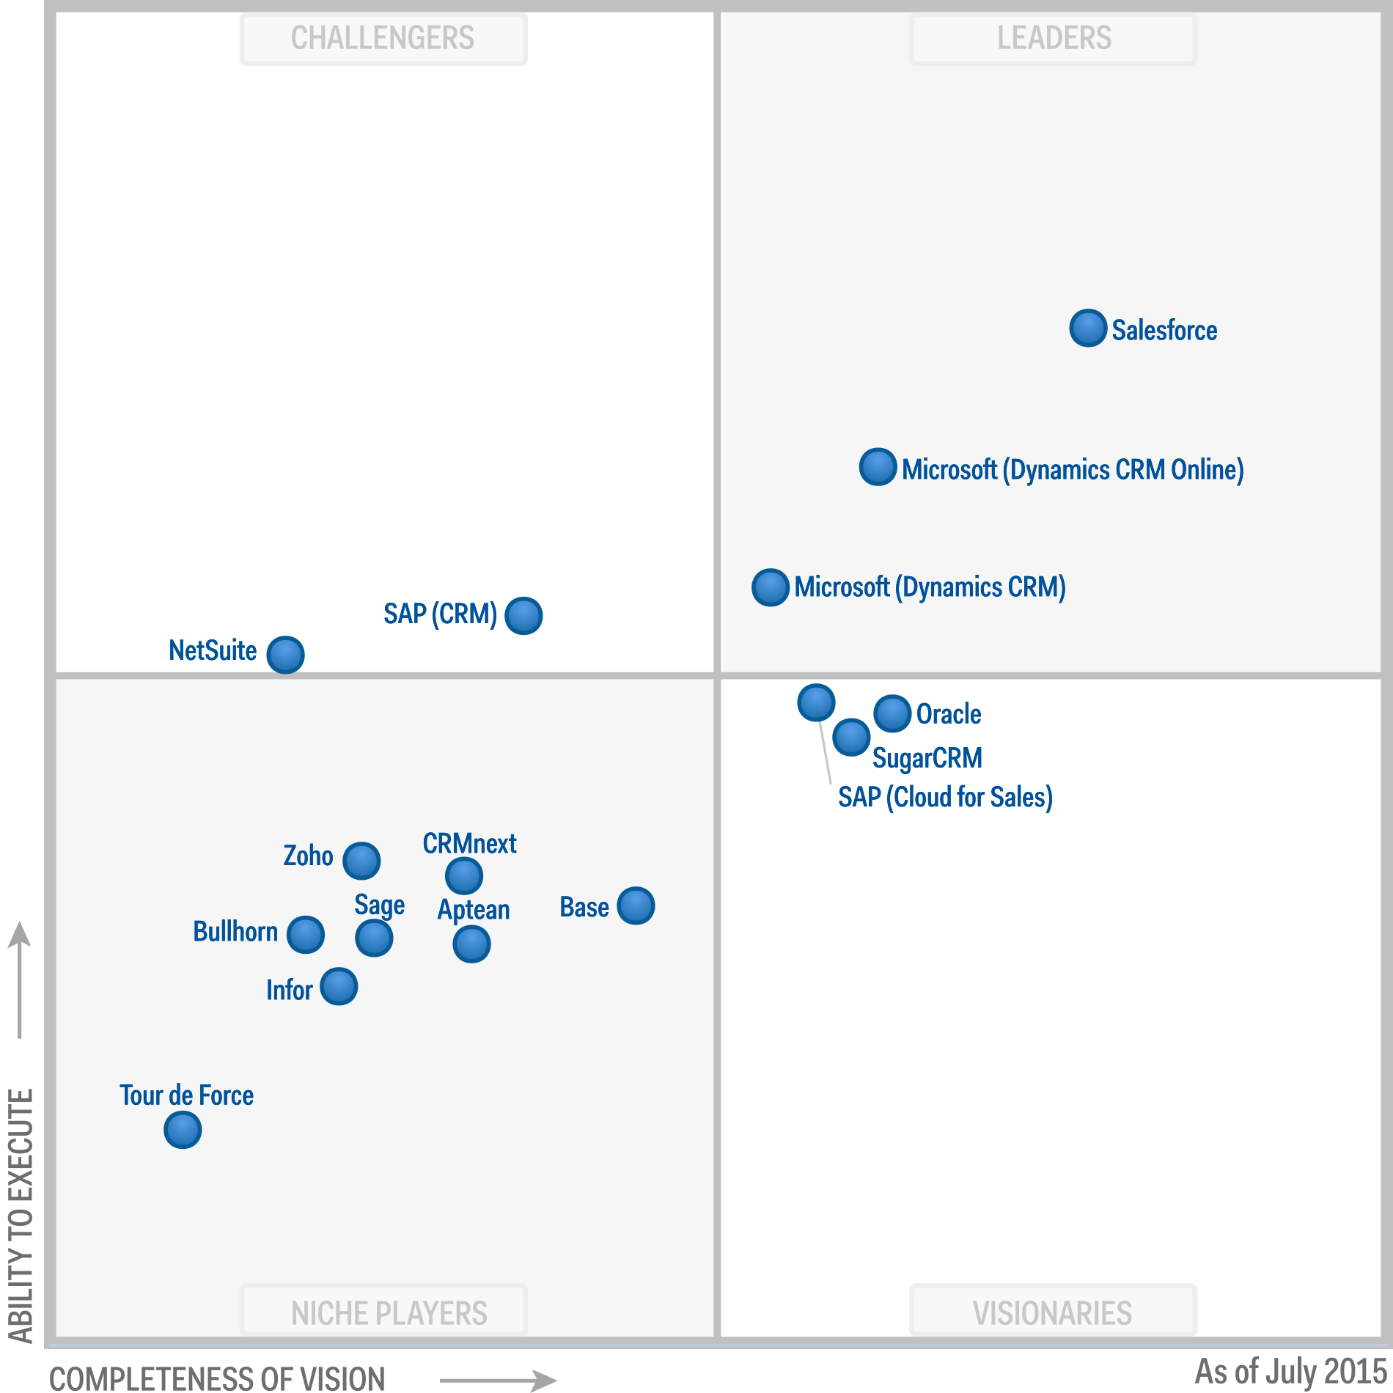 Magic Quadrant for Sales Force Automation 2015 (G00269153)